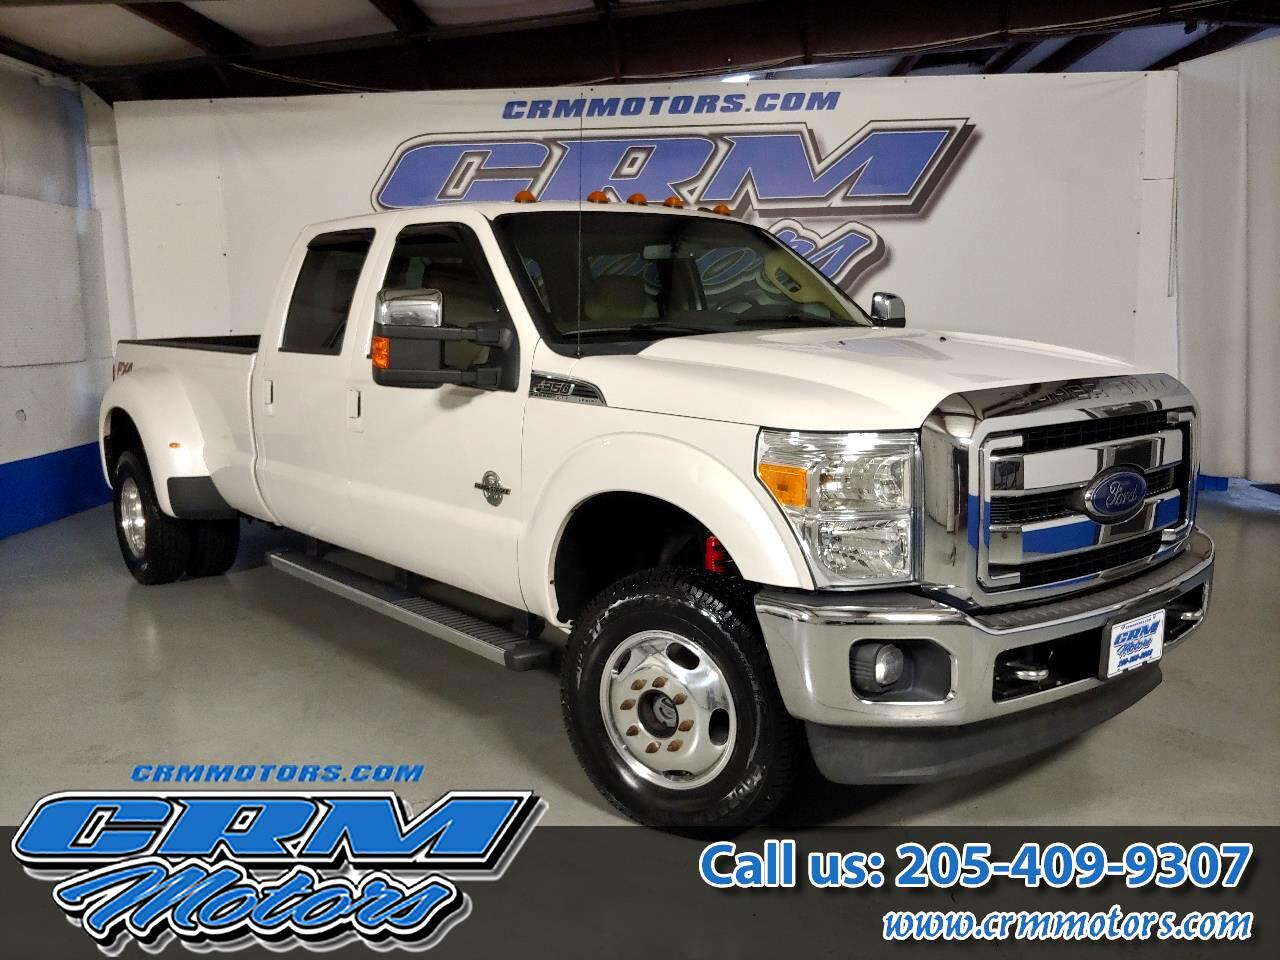 2013 Ford Super Duty F-350 DRW 4WD DUALLY CREW CAB LARIAT 6 NEW TIRES!